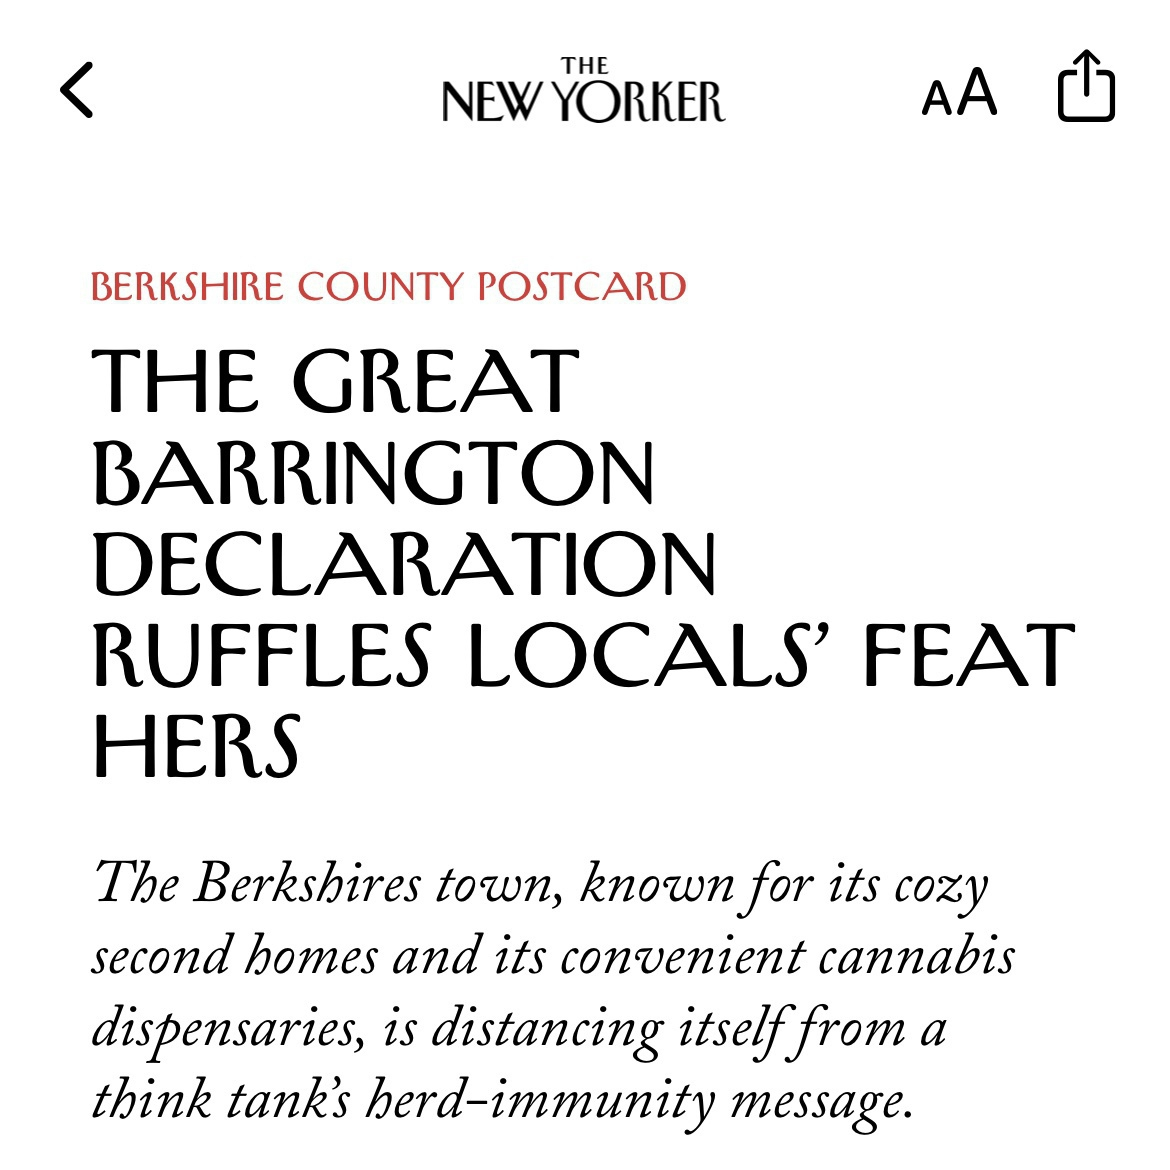 New Yorker article from iPhone with headline: THE GREAT BARRINGTON DECLARATION RUFFLES LOCALS' FEAT HERS